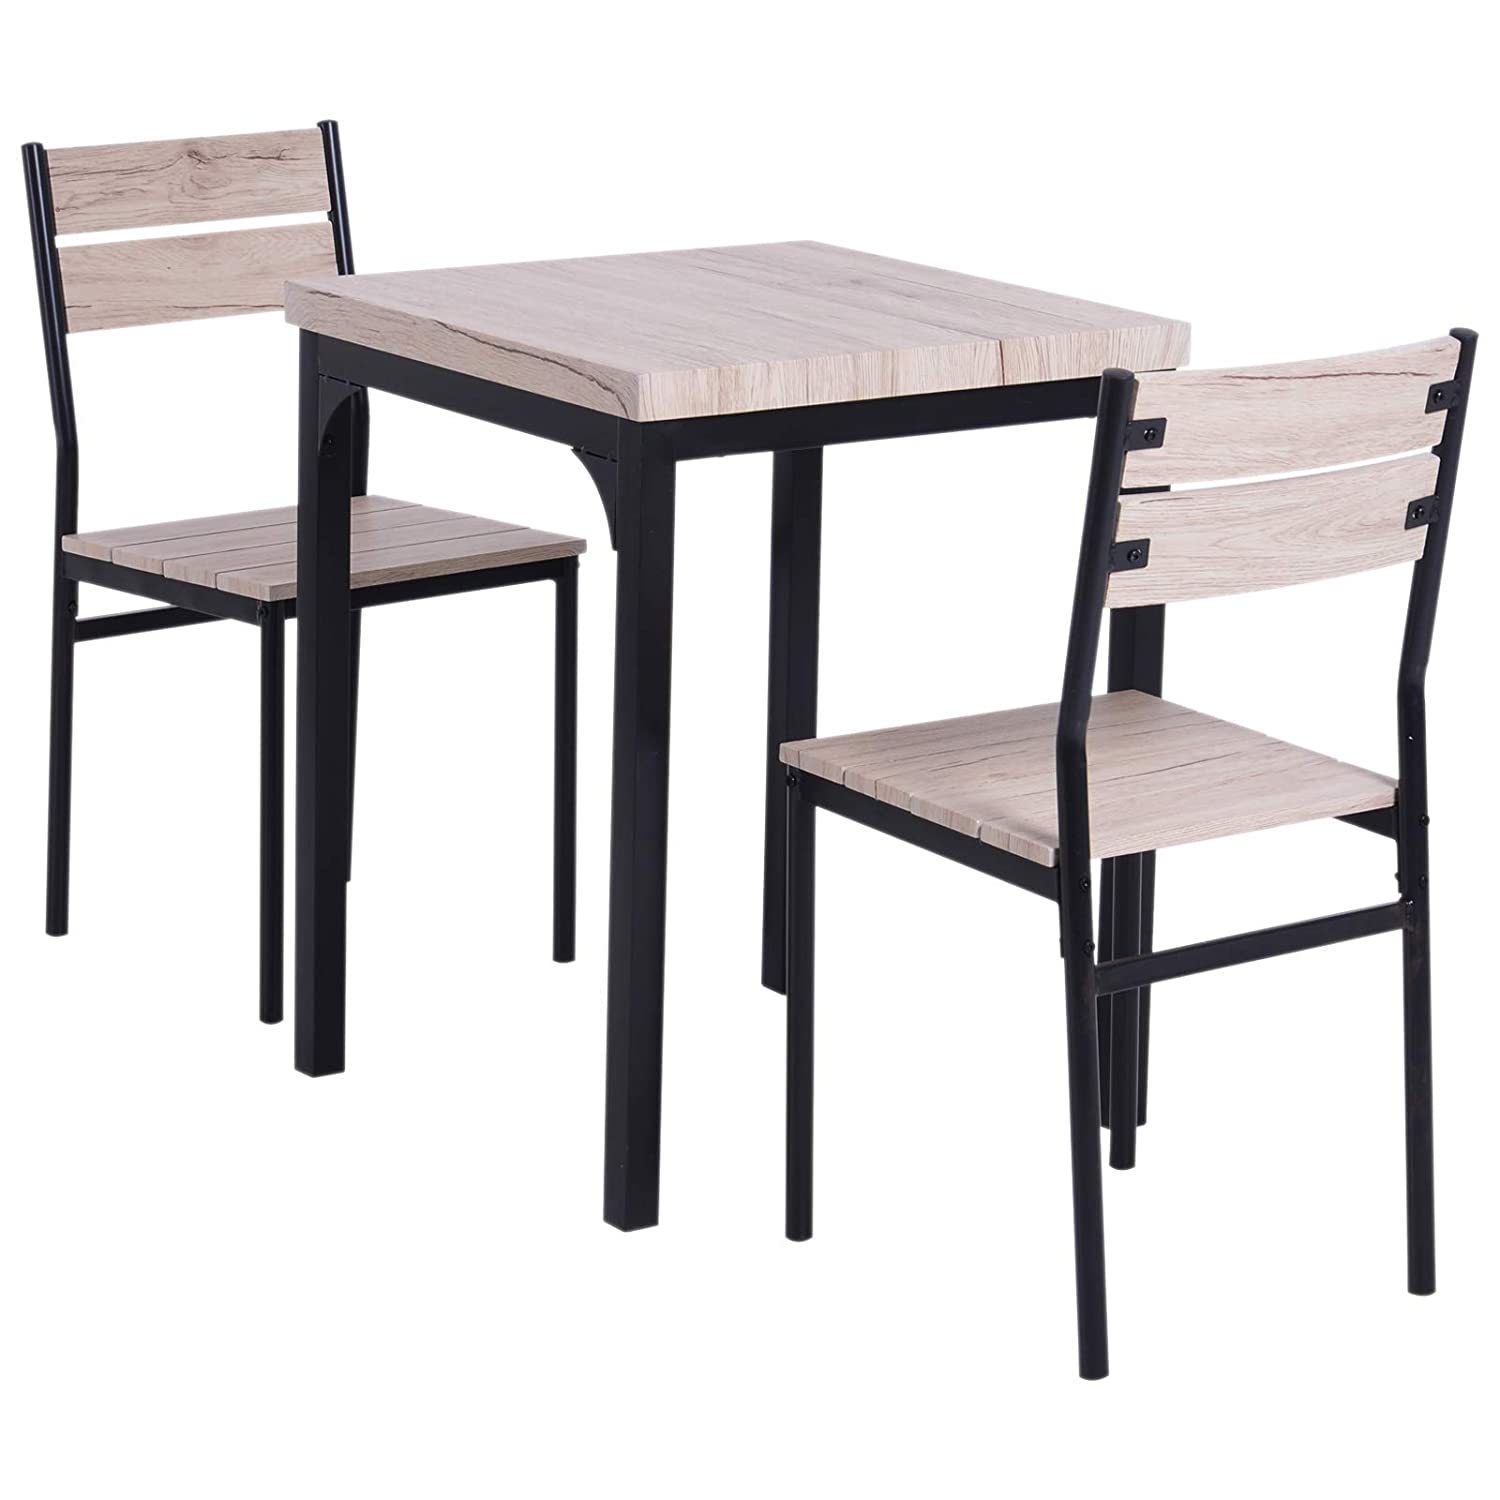 Homco Rustic Country Wood Top 3 Piece Kitchen Table Dining Set w/Chairs